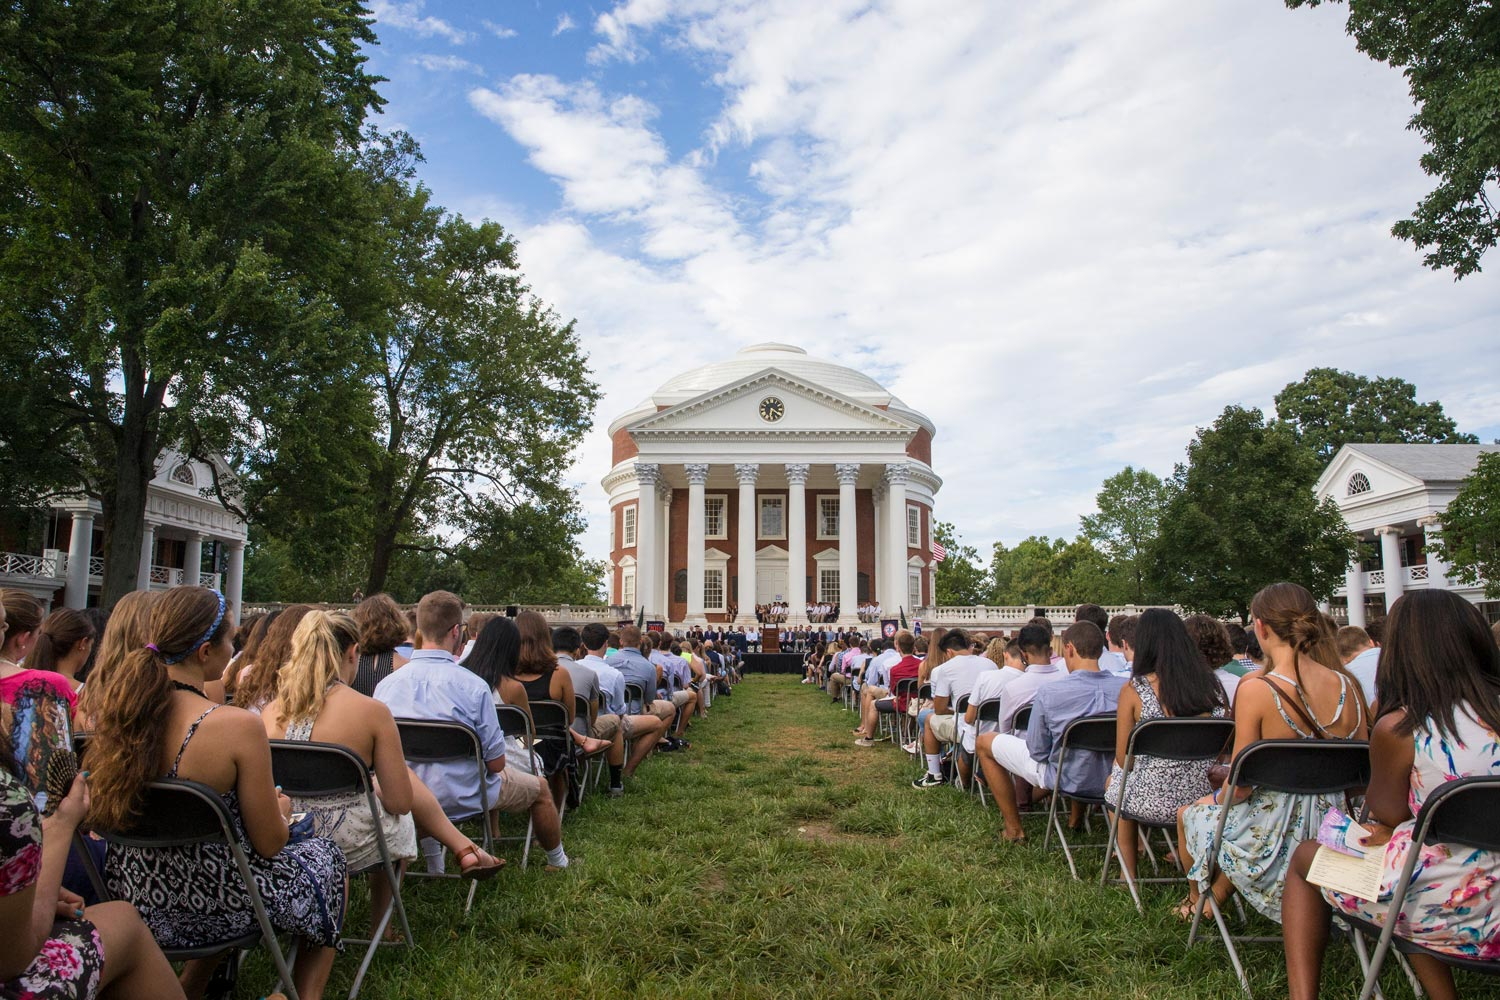 During Opening Convocation, students face the Rotunda. Four years later, they will face Old Cabell Hall at graduation, serving as a bookend to their careers at UVA.